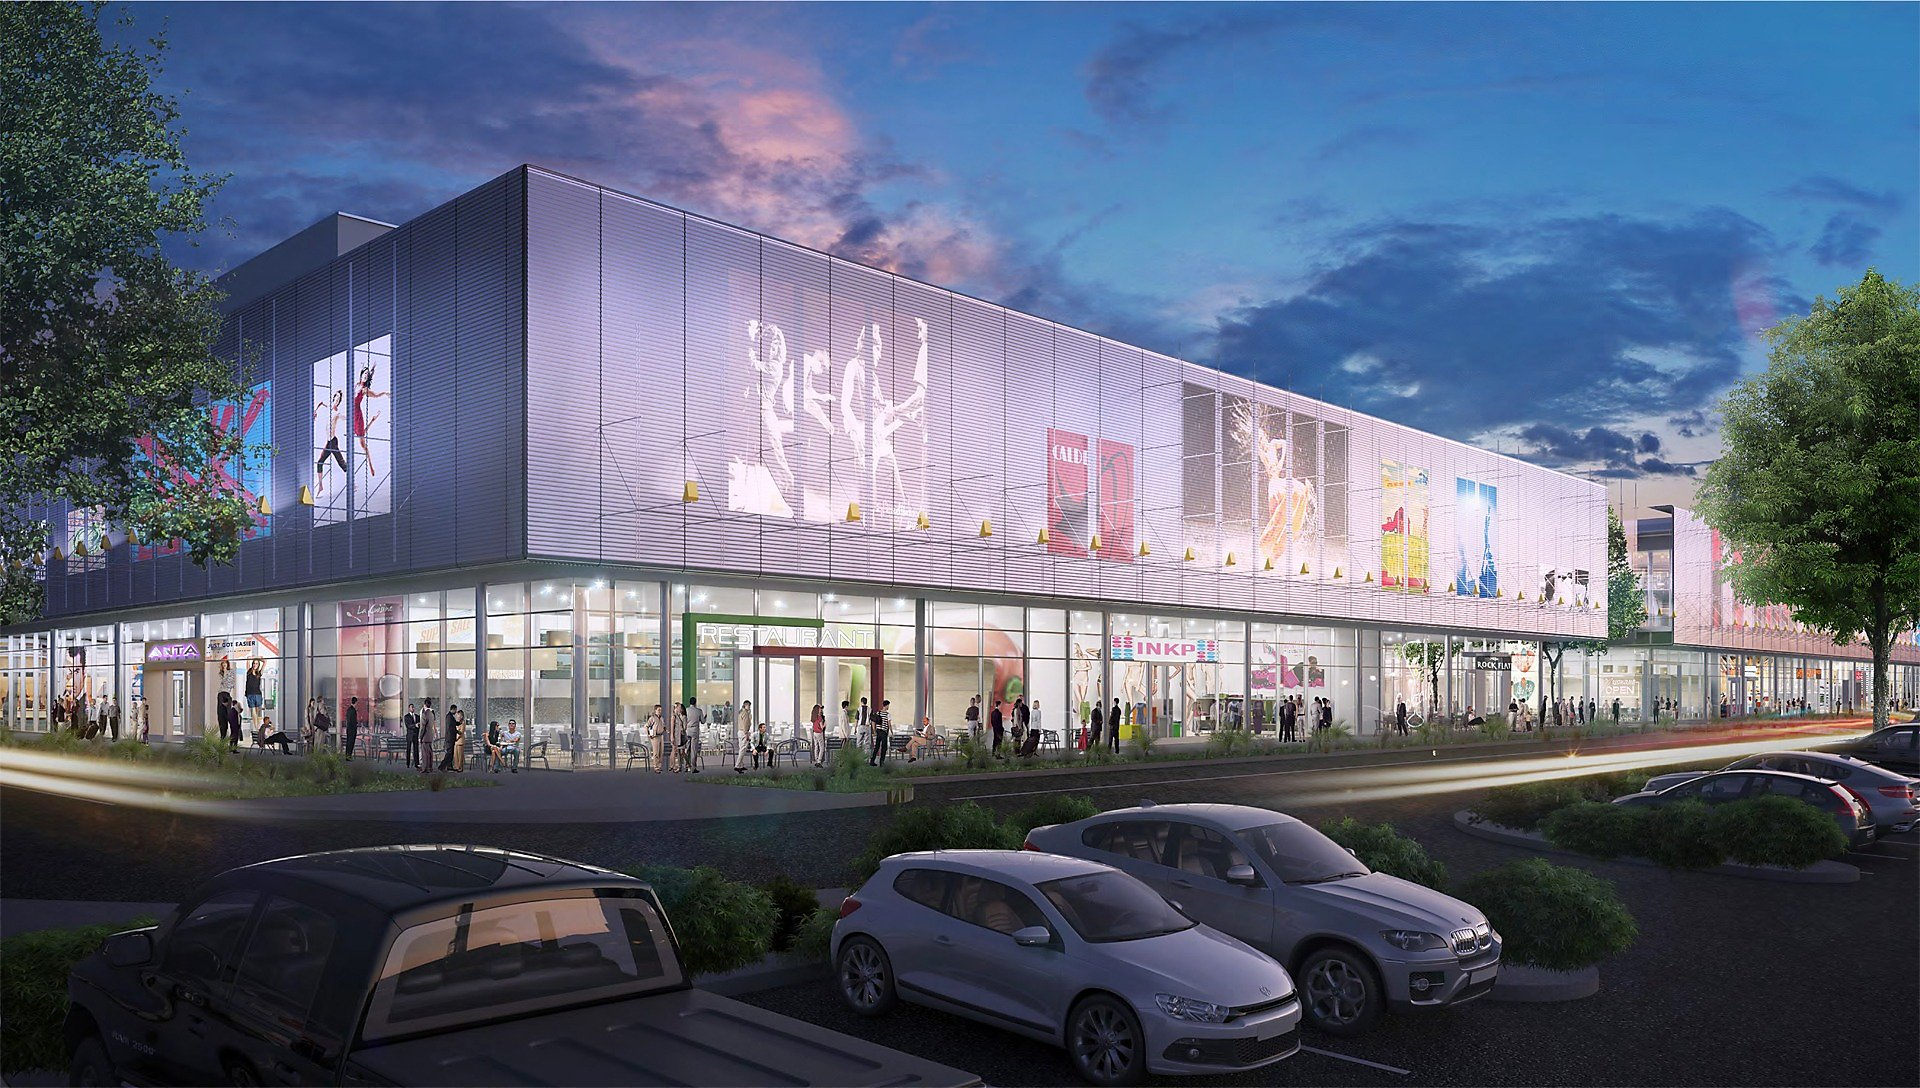 New York Developers To Build Suburban Style Mall In The